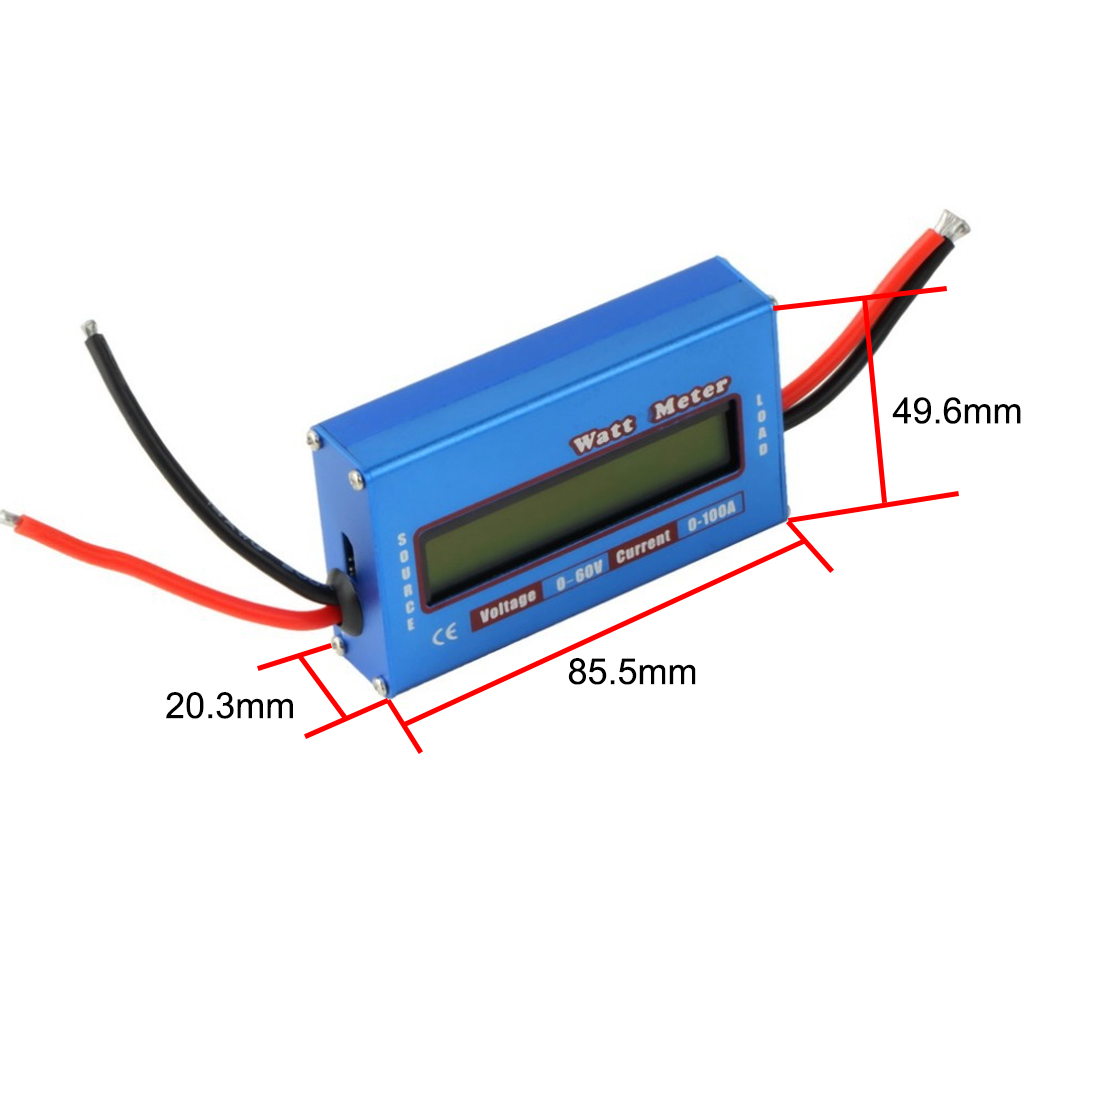 LCD Digital For DC 60V/100A Balance Voltage RC Battery Power Analyzer Watt Meter new digital balance voltage power watt meter analyzer tester checker for rc helicopter battery charger 60v 100a wattmeter